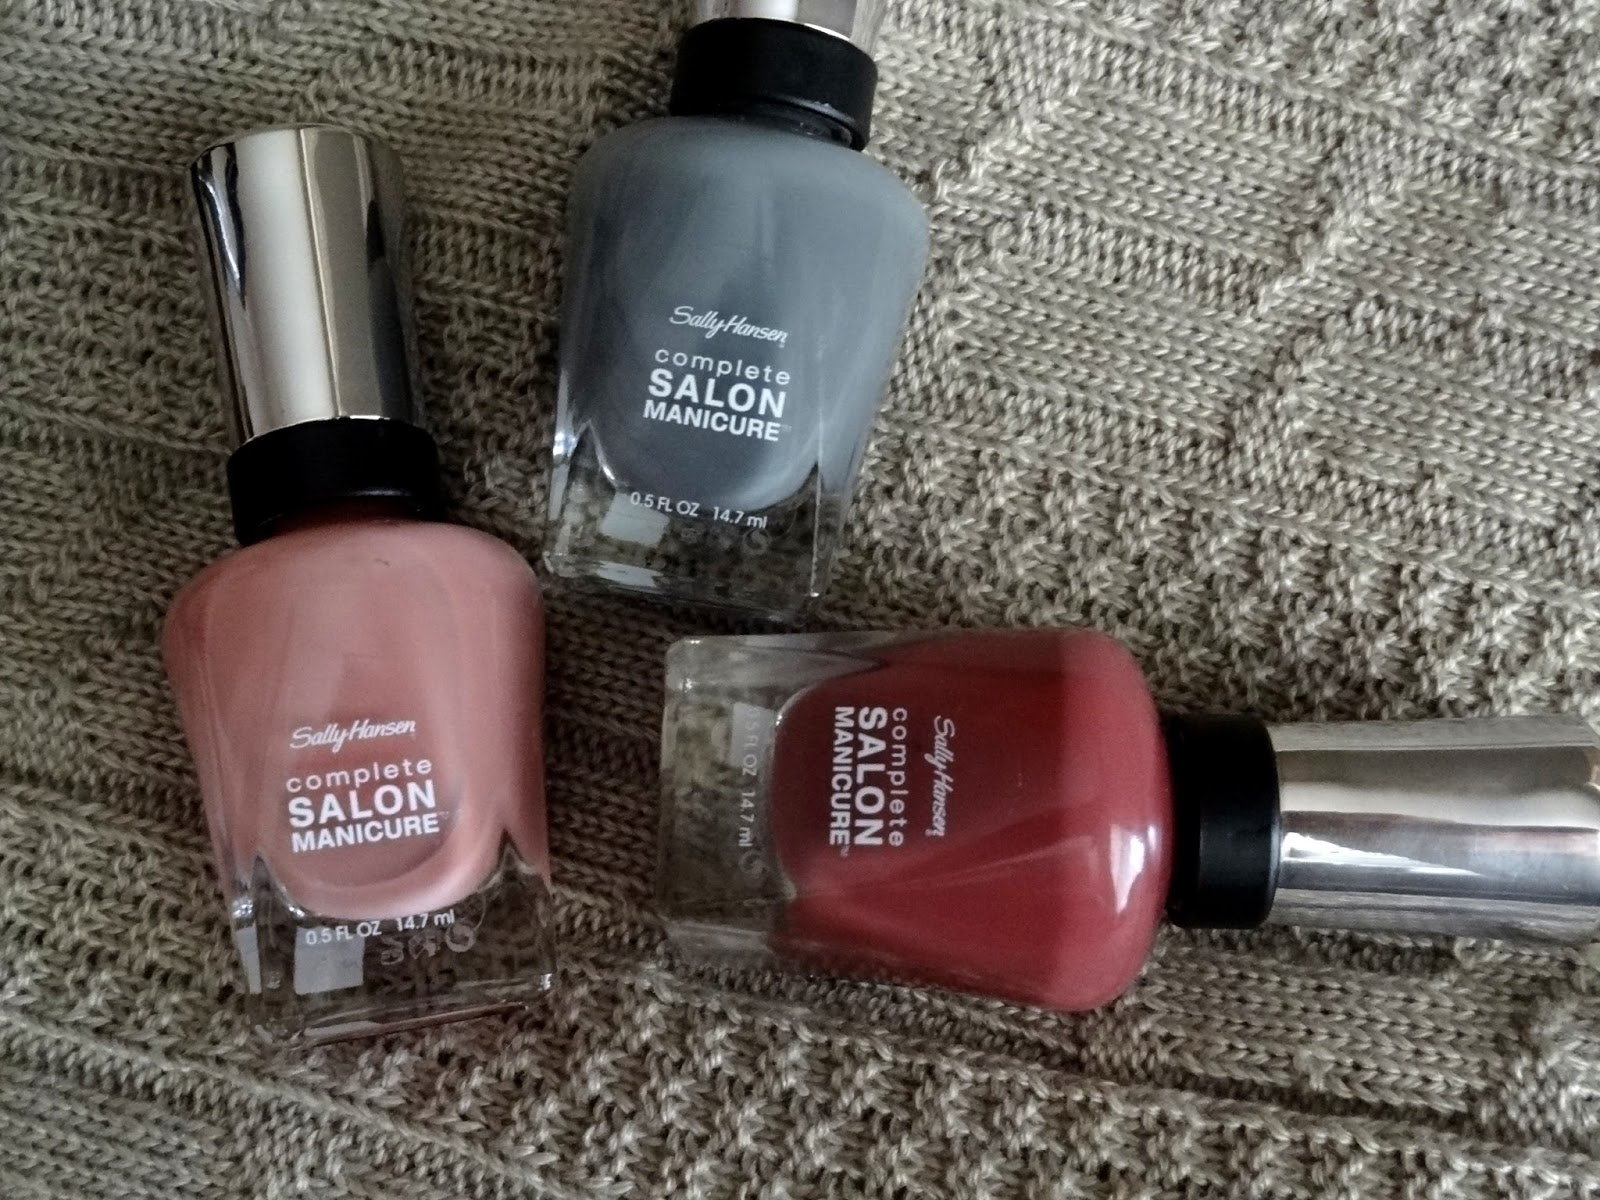 Makeup, Beauty and More: Quick Roundup Of A Few Makeup ...